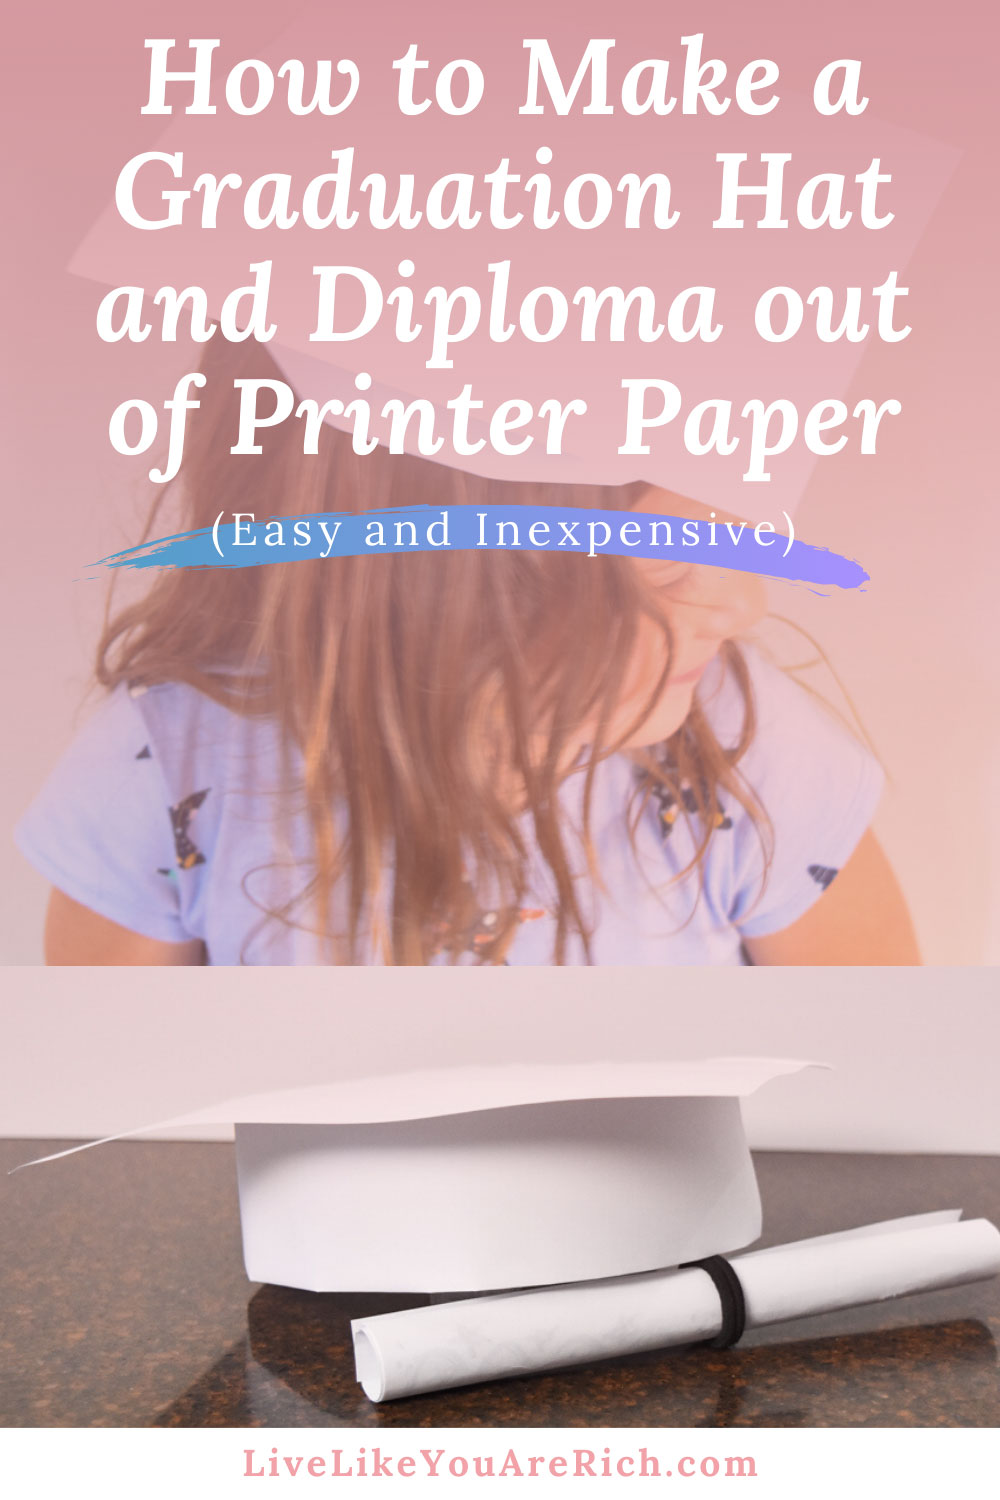 This tutorial will show you how to make a graduation hat and diploma out of printer paper and tape. It is very easy and inexpensive. It's a great craft for kids. These caps are customizable. #crafts #kidsactivities #graduationhat